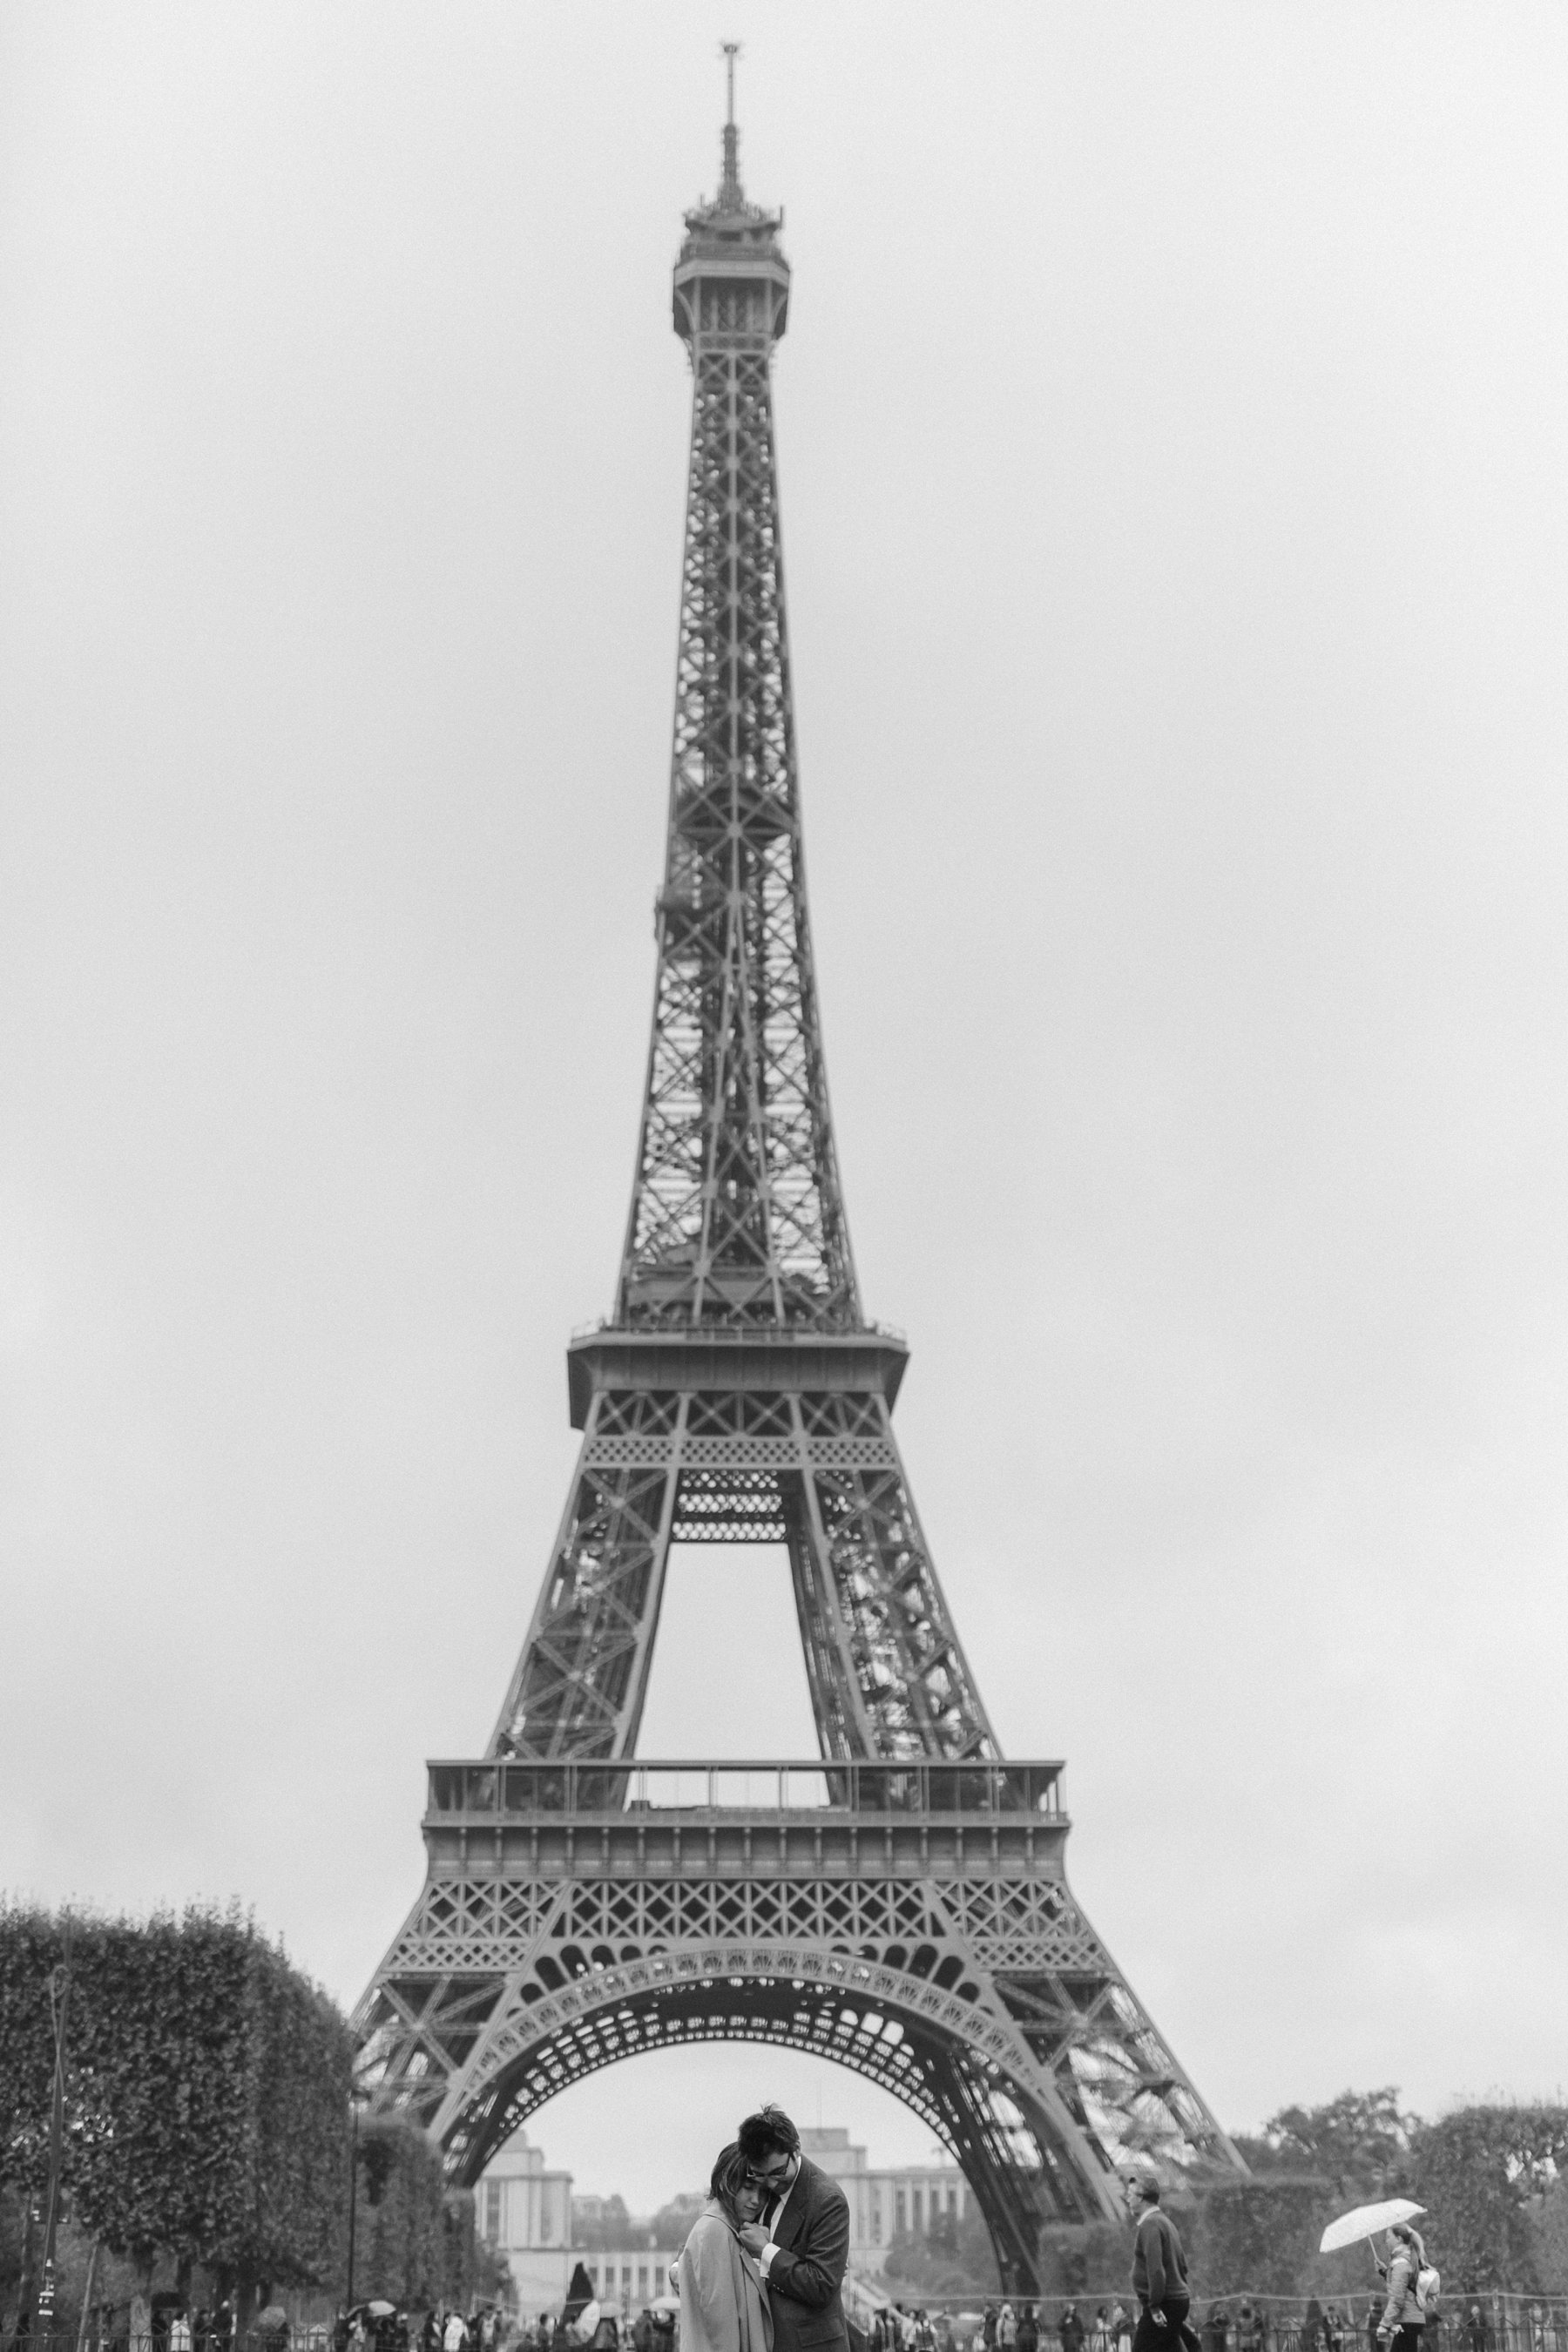 A wedding photo with the Eiffel Tower in Paris, France